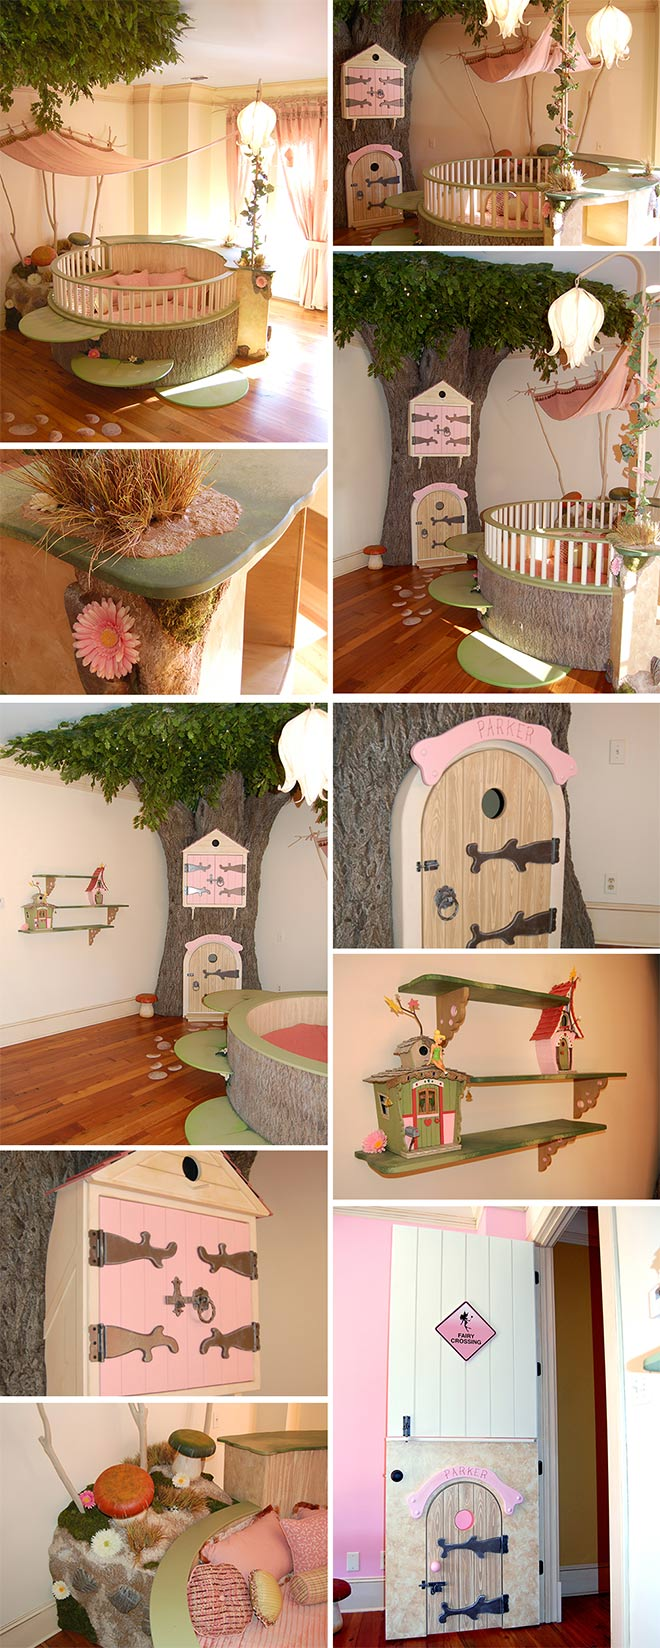 Fairy Land - Design par Mytropolisdesign